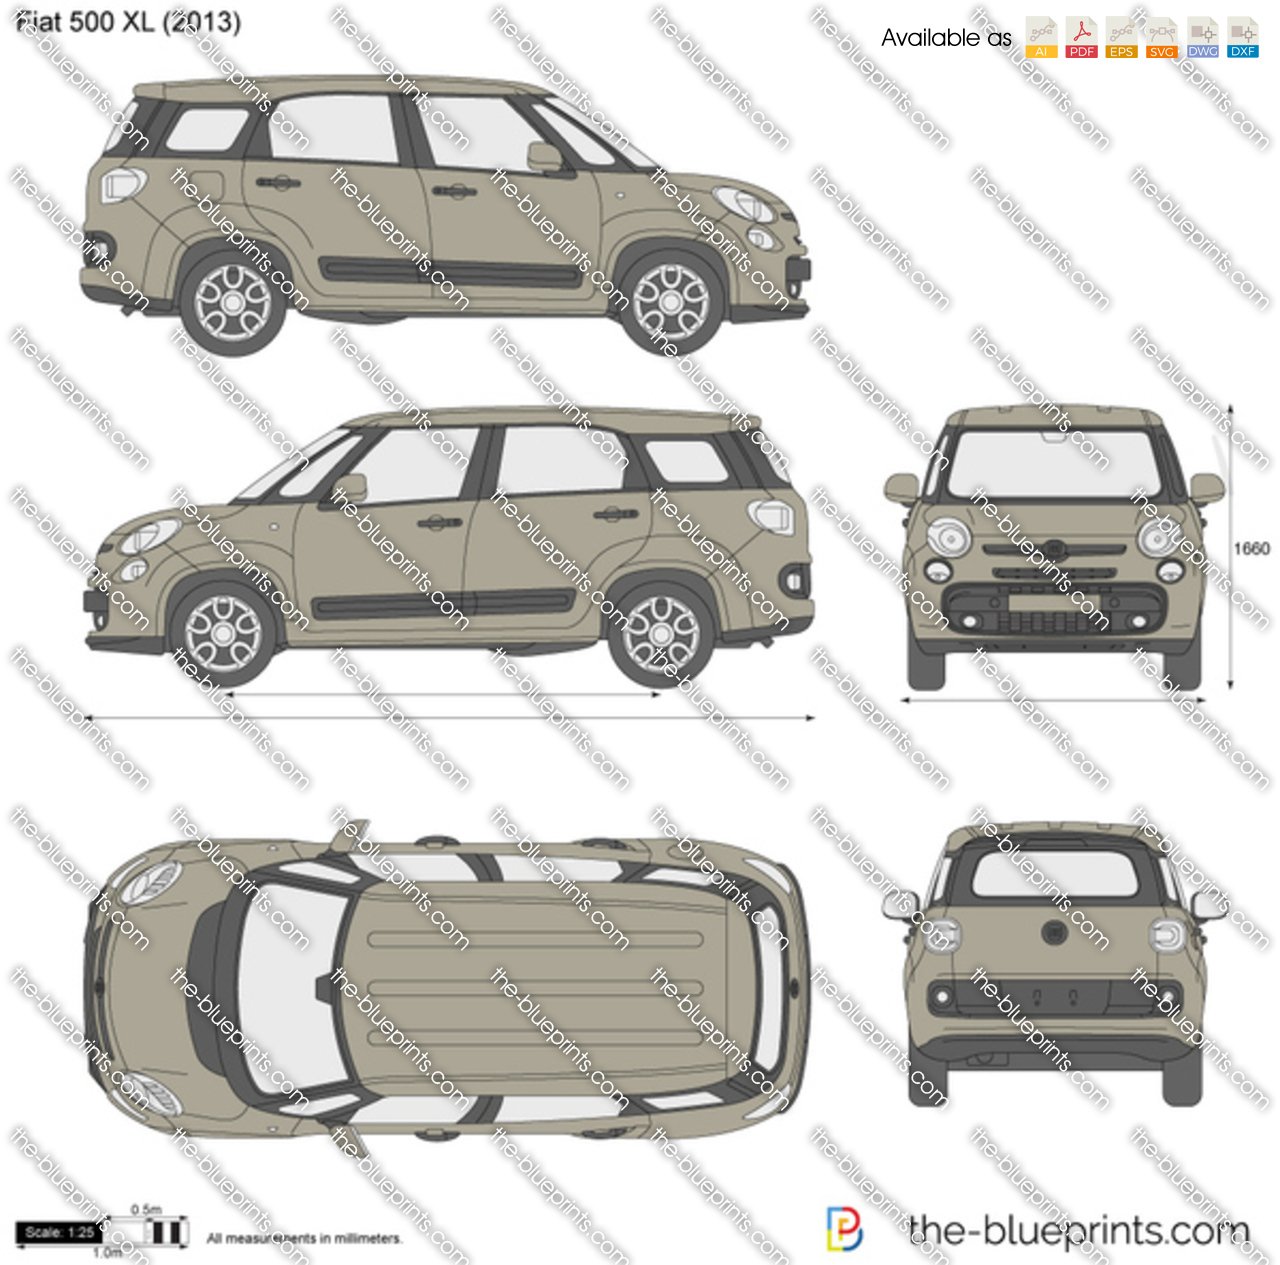 fiat 500 xl vector drawing. Black Bedroom Furniture Sets. Home Design Ideas